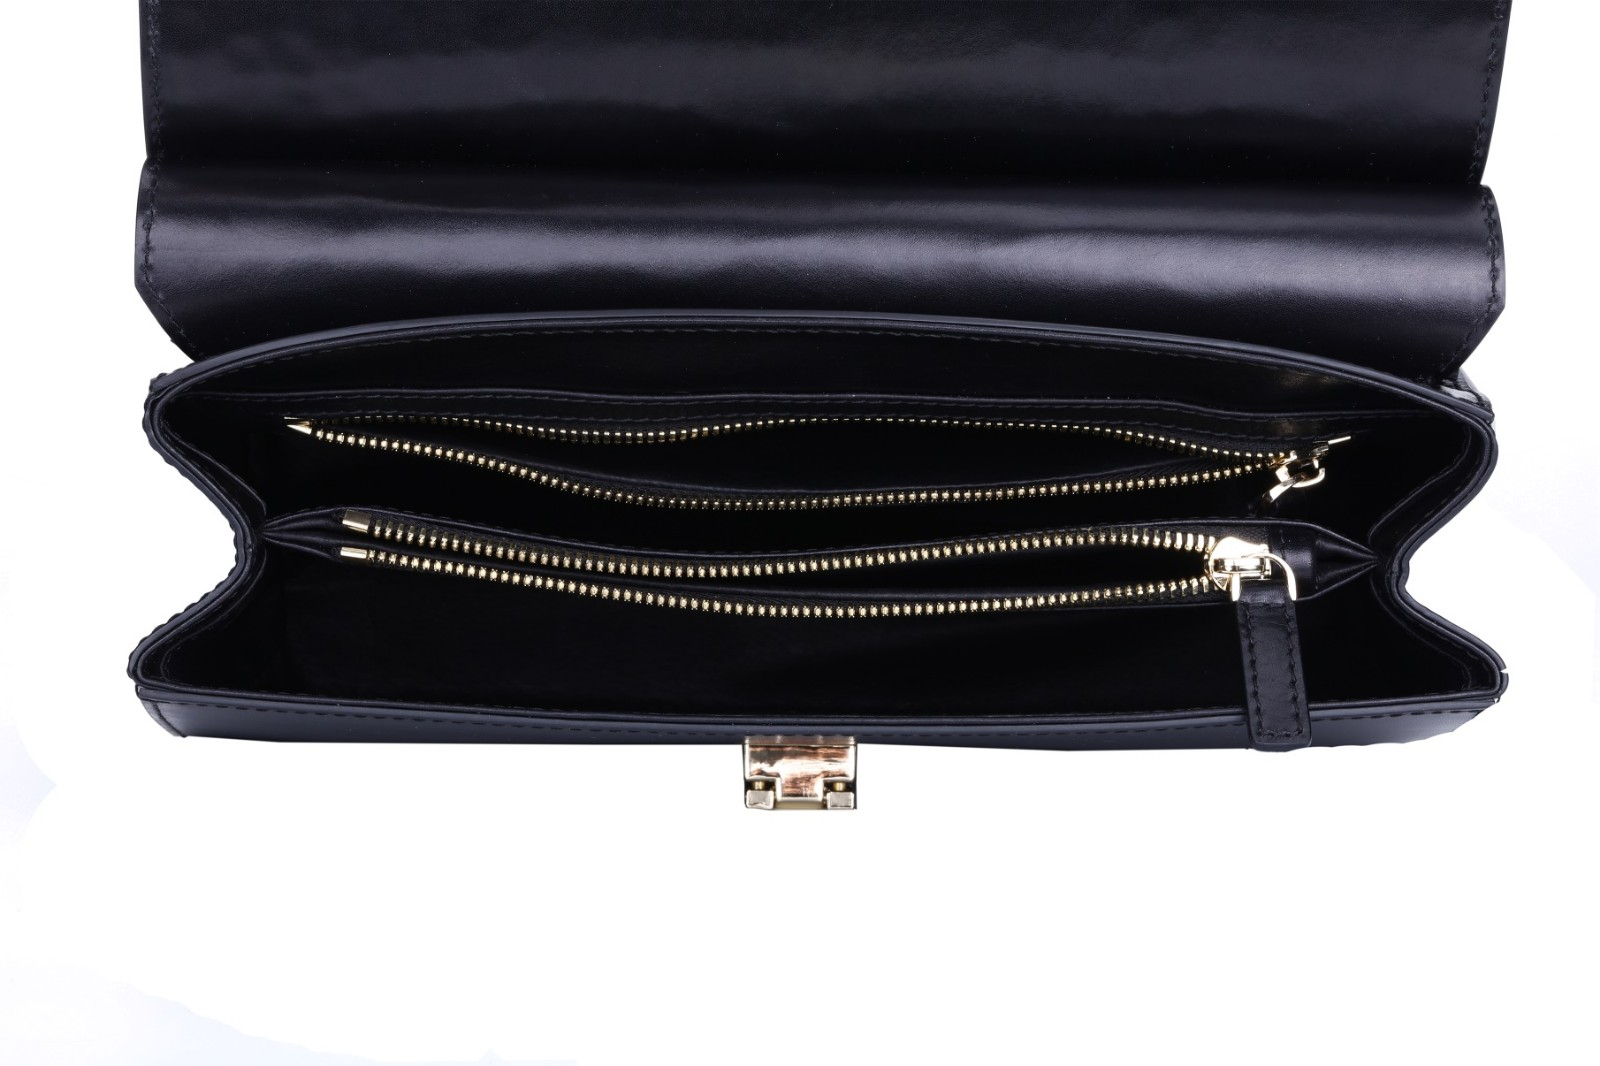 simple luxury handbags metal duffle for women-10